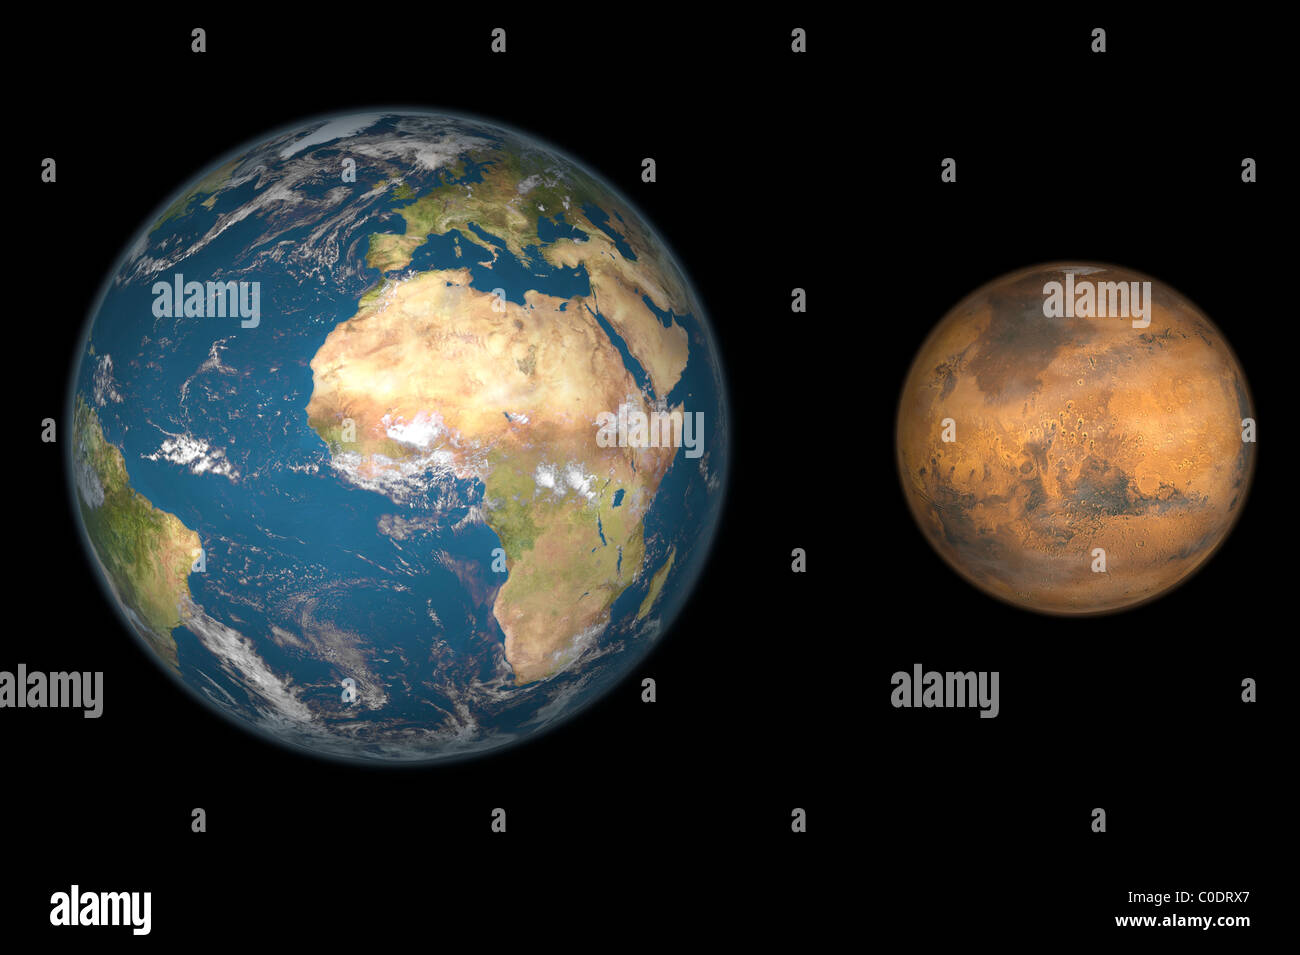 Artist's concept comparing the size of Mars with that of the Earth. - Stock Image